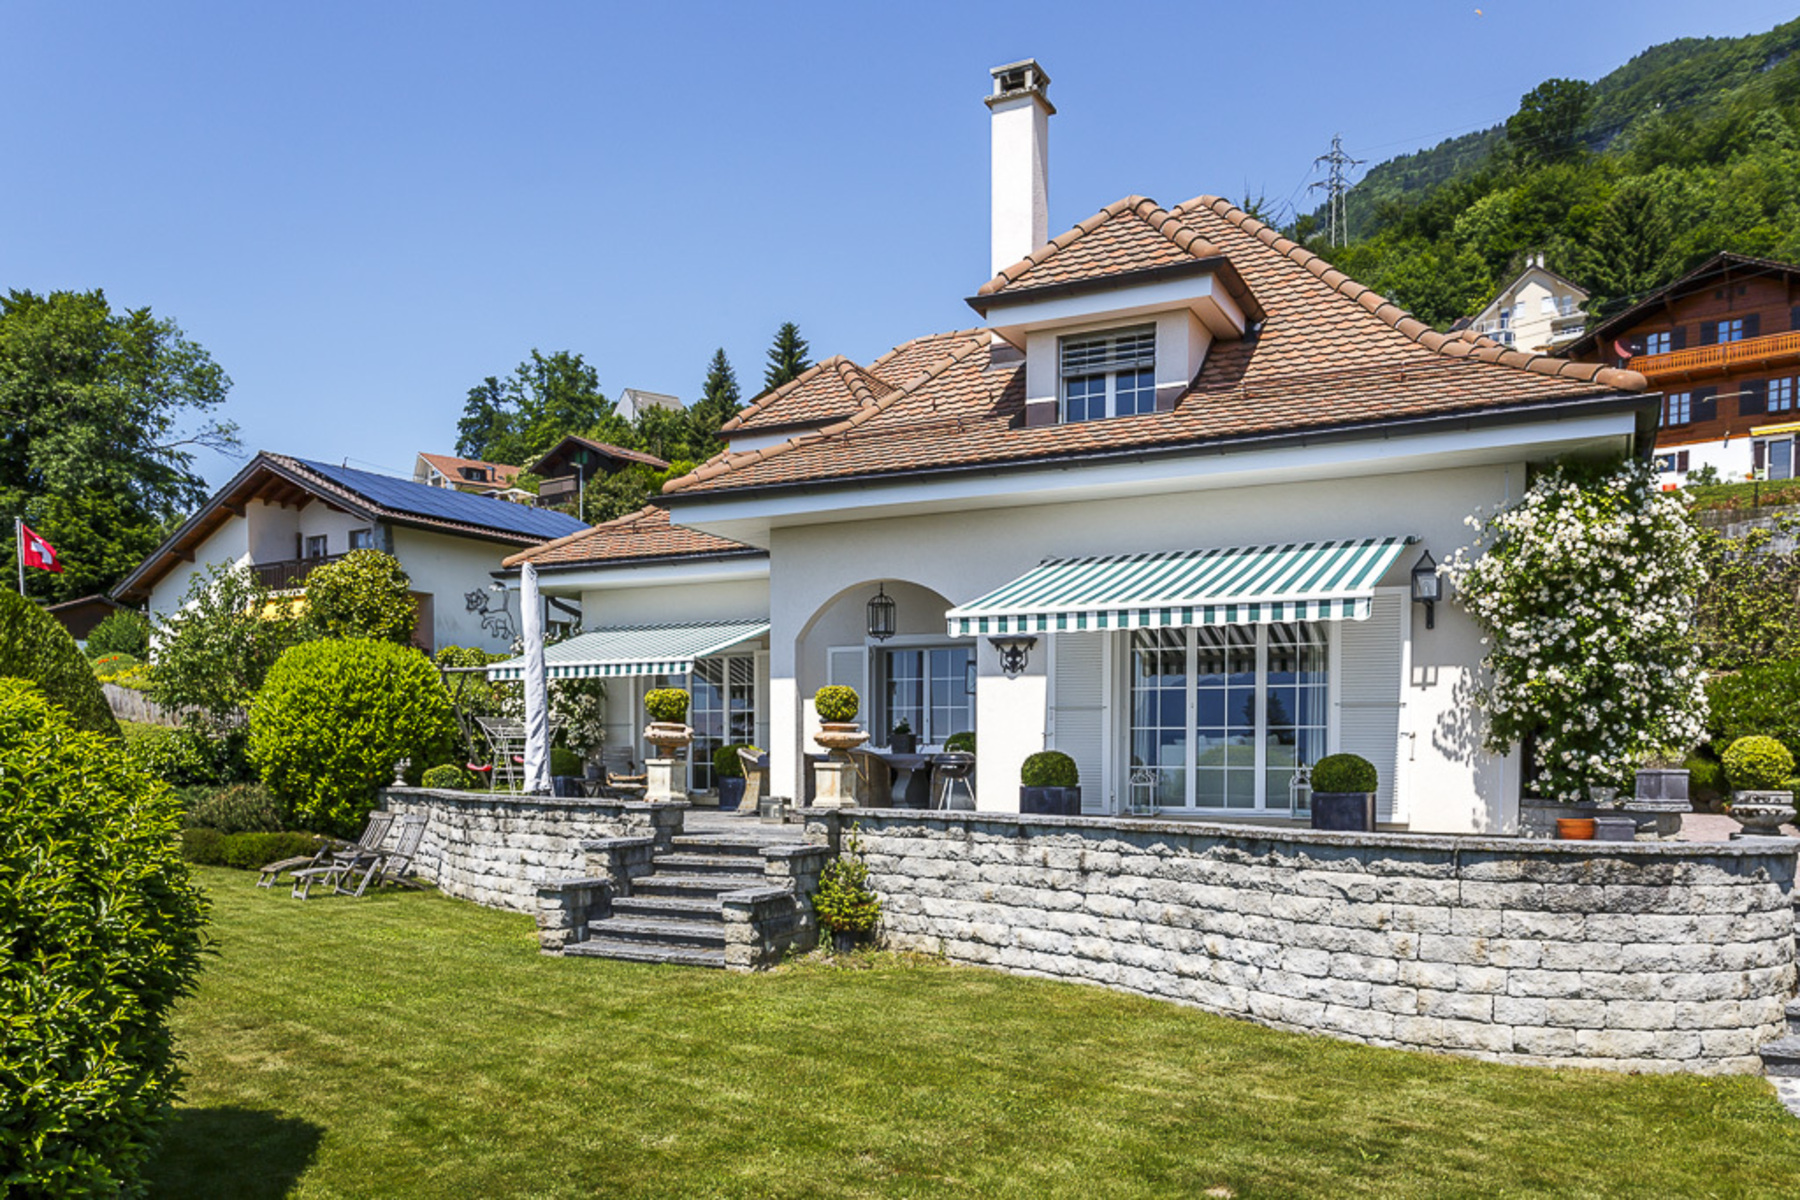 Single Family Home for Sale at Exquisite 6.5 room family home Superb views over the lake Blonay Blonay, Vaud, 1807 Switzerland